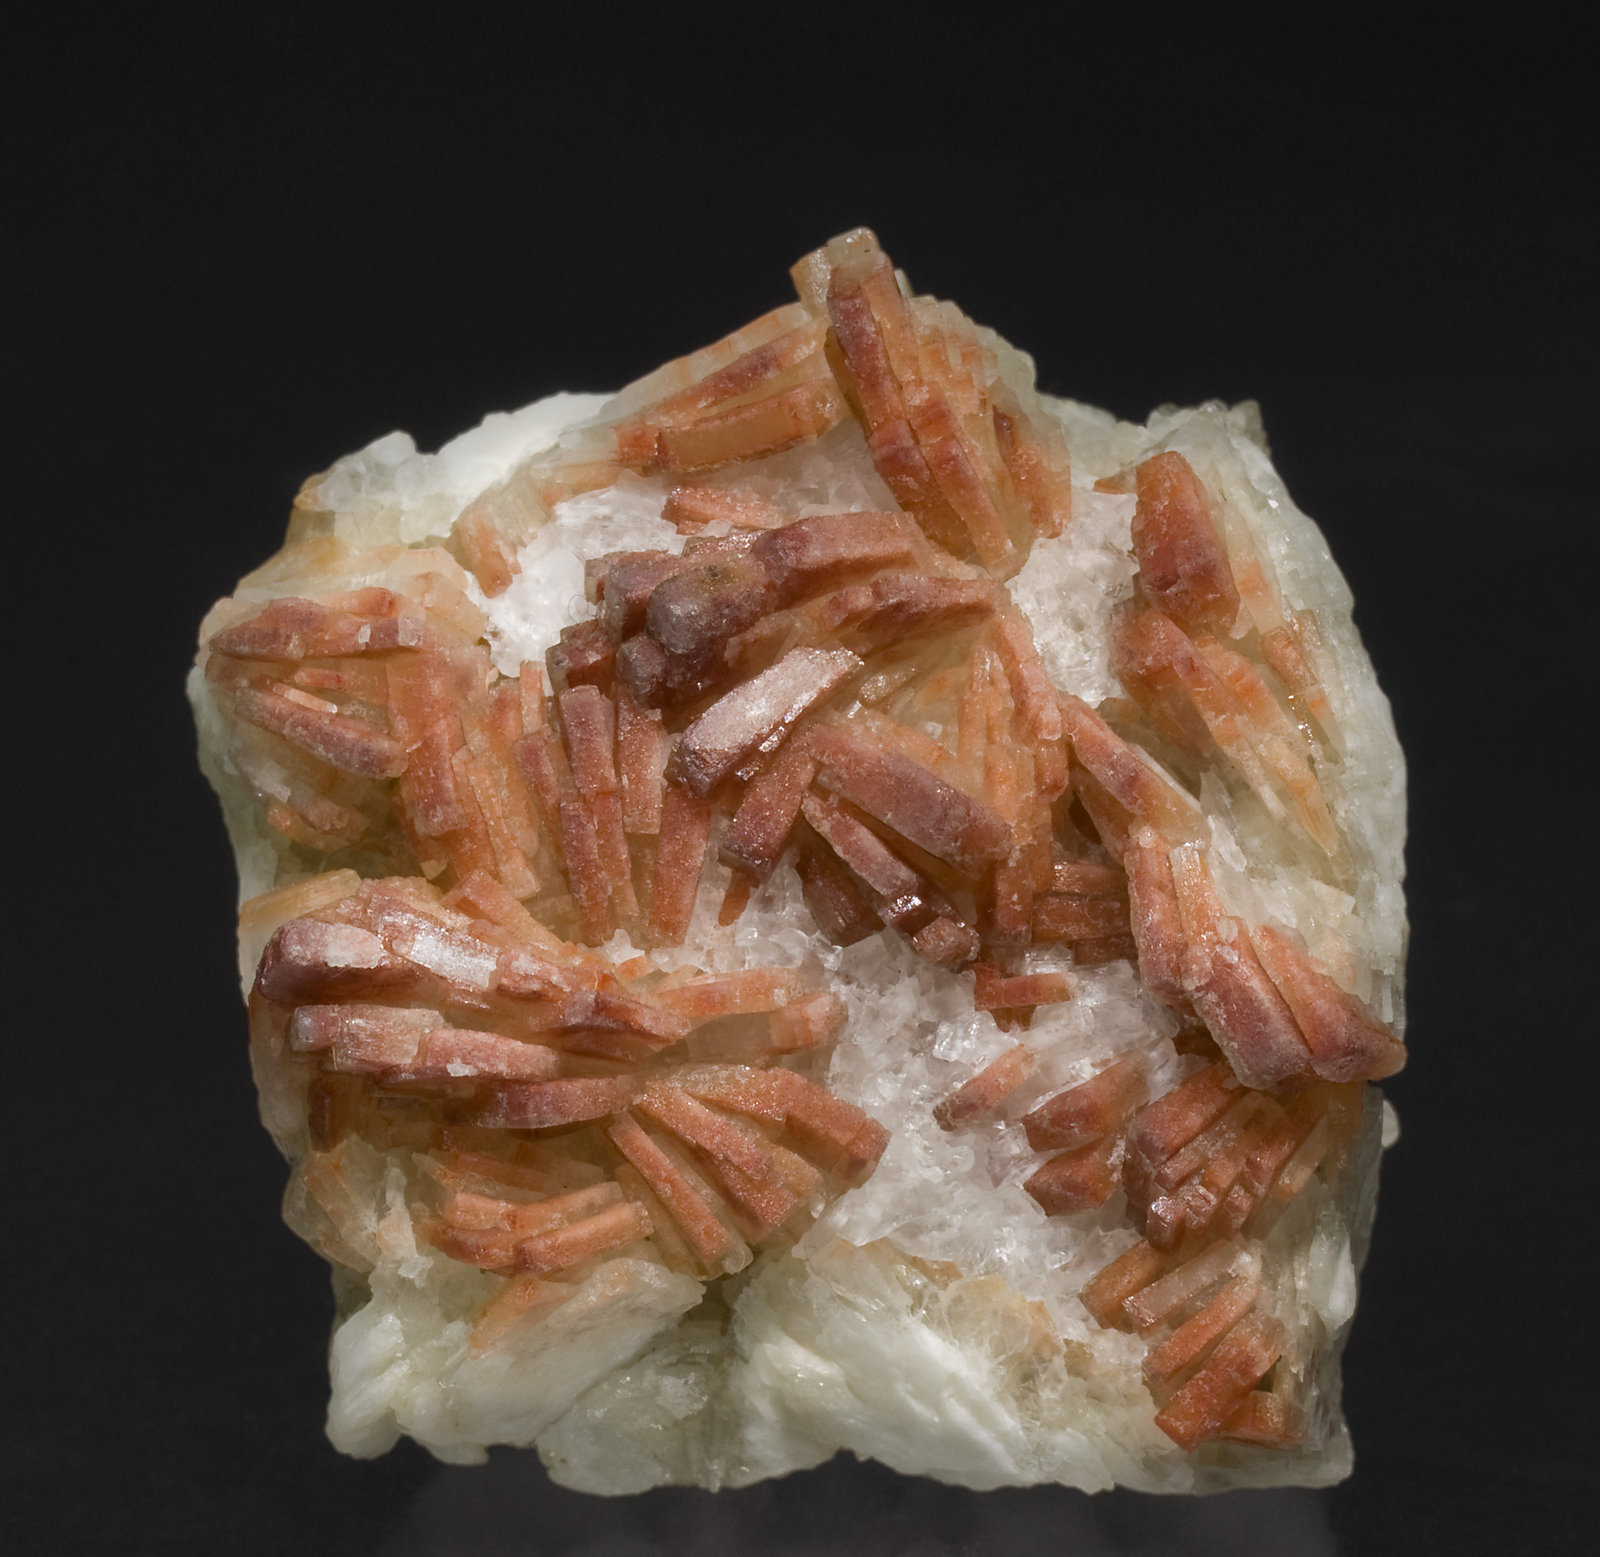 specimens/s_imagesW4/Barite-NG11W4f.jpg